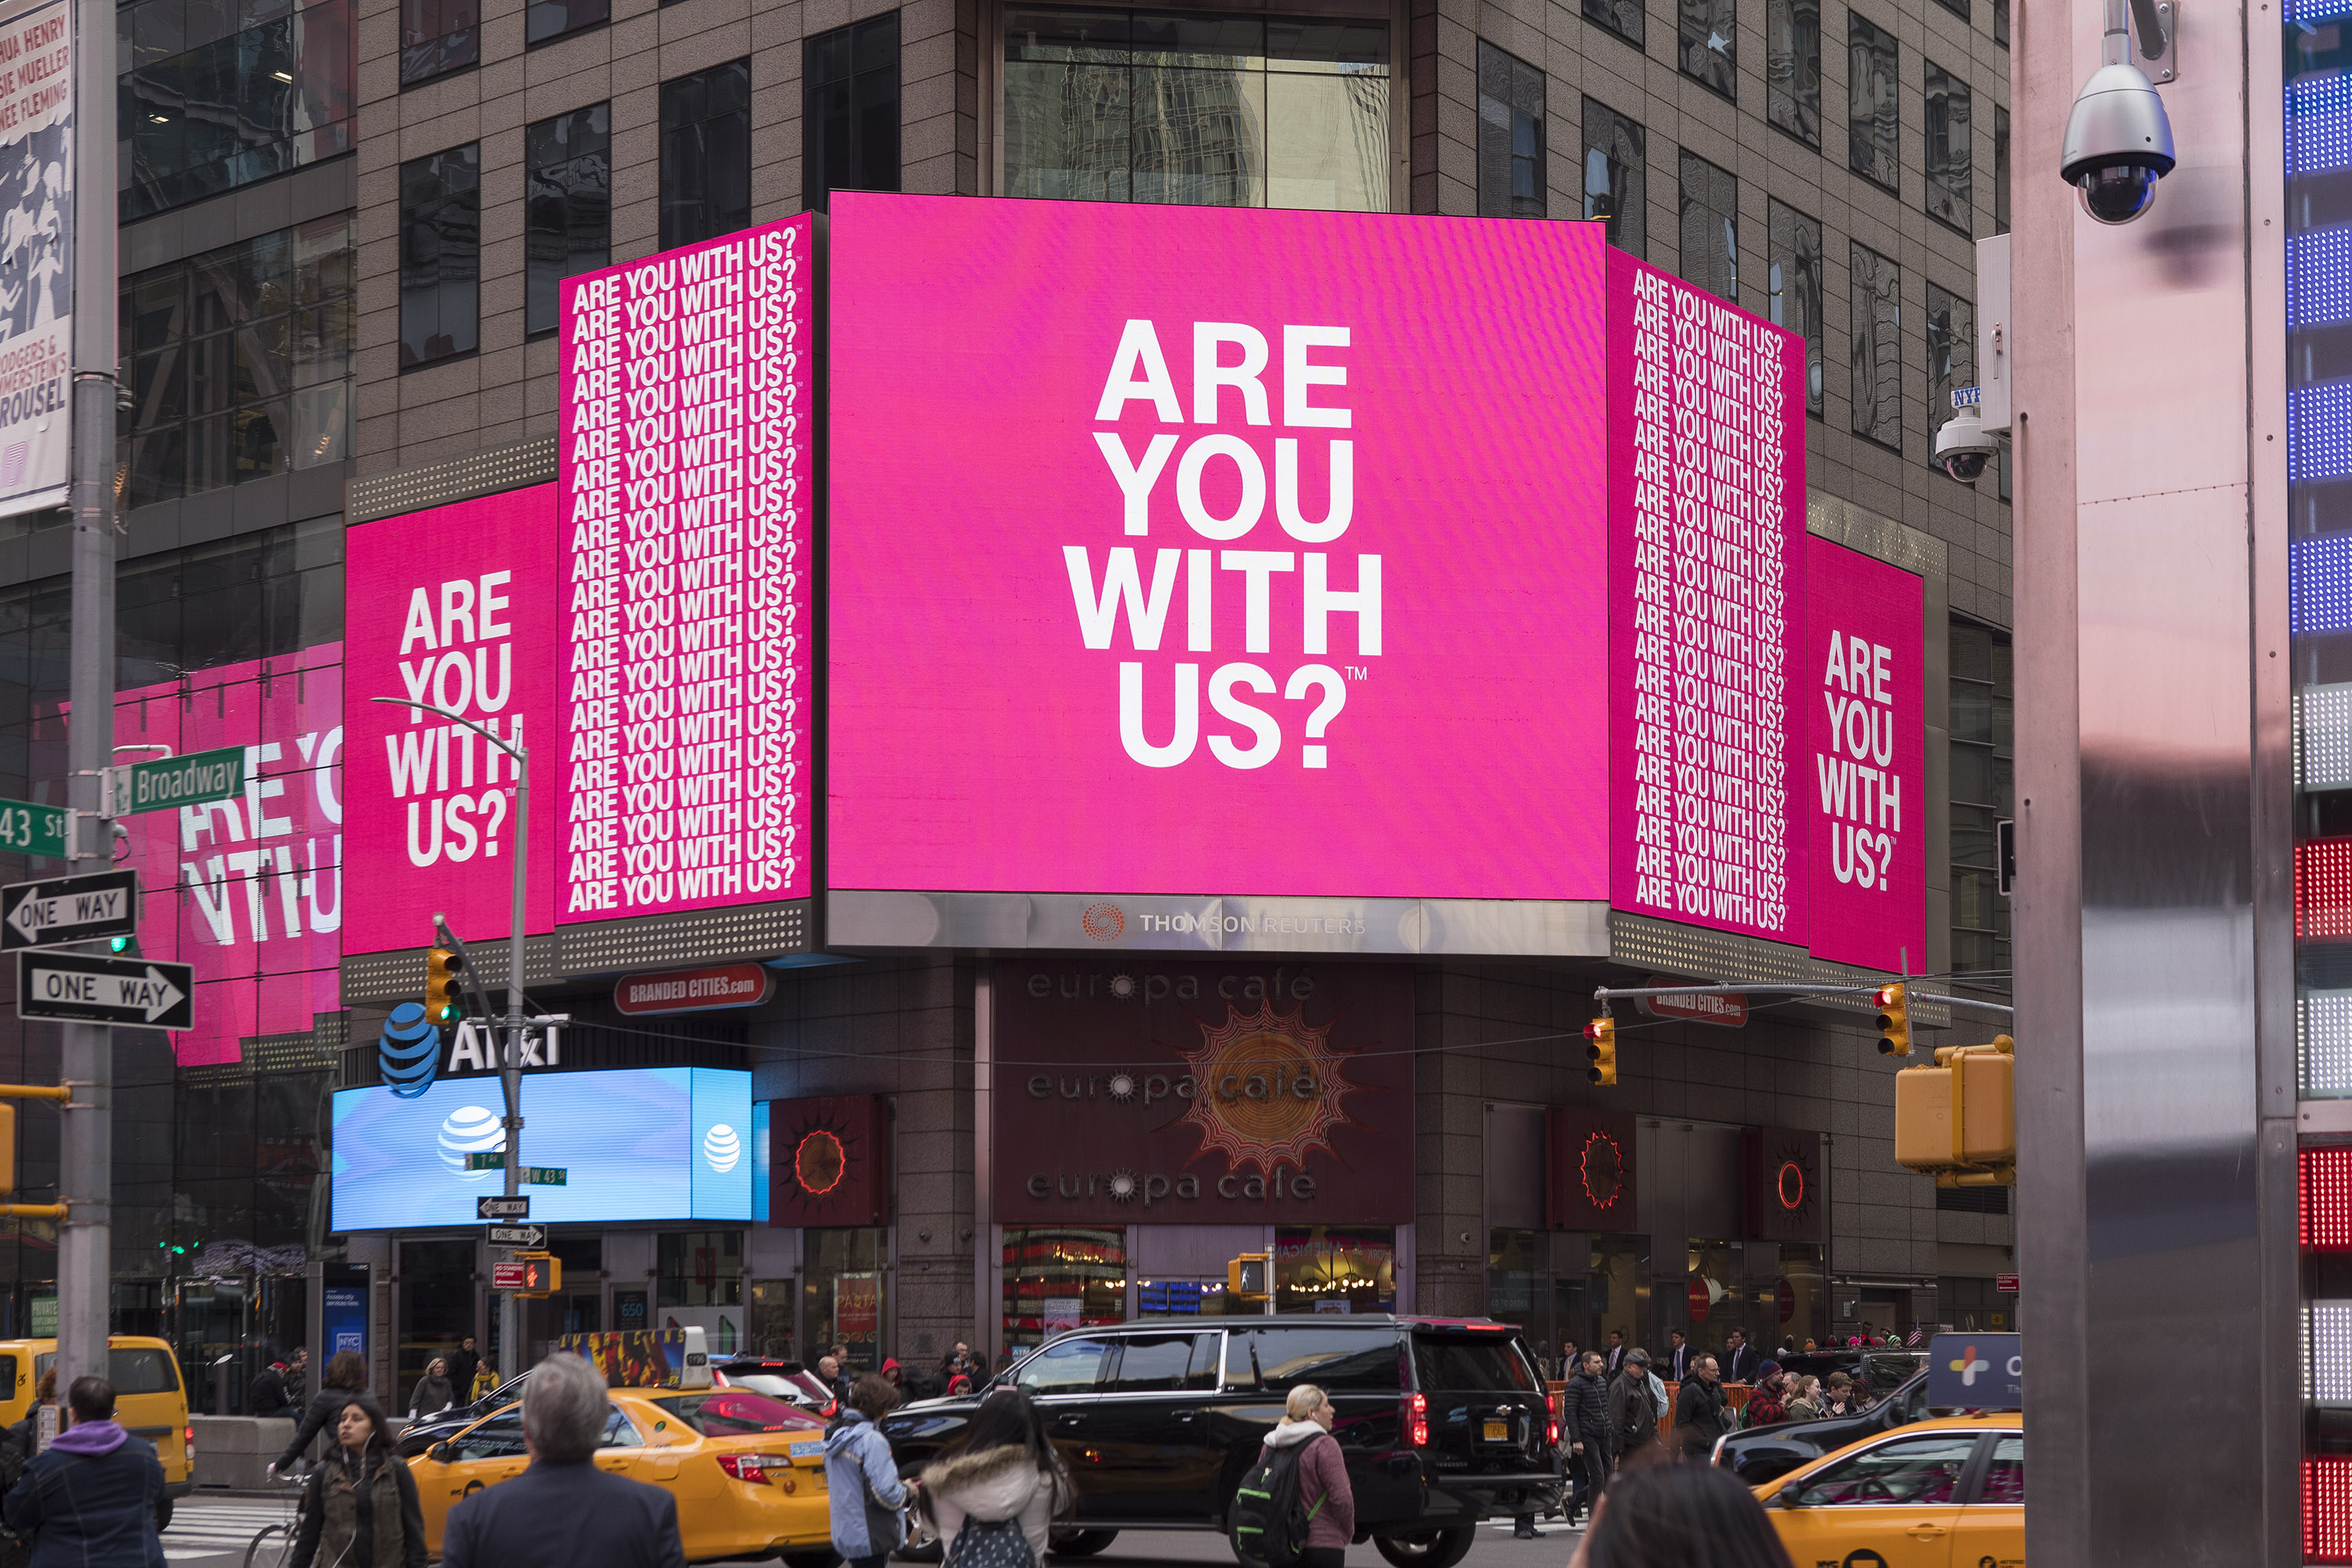 Matthijs Matt van Leeuwen, Mother New York, T-Mobile, Lauren van Aswegen, Demelza Rafferty, Identity Campaign Design